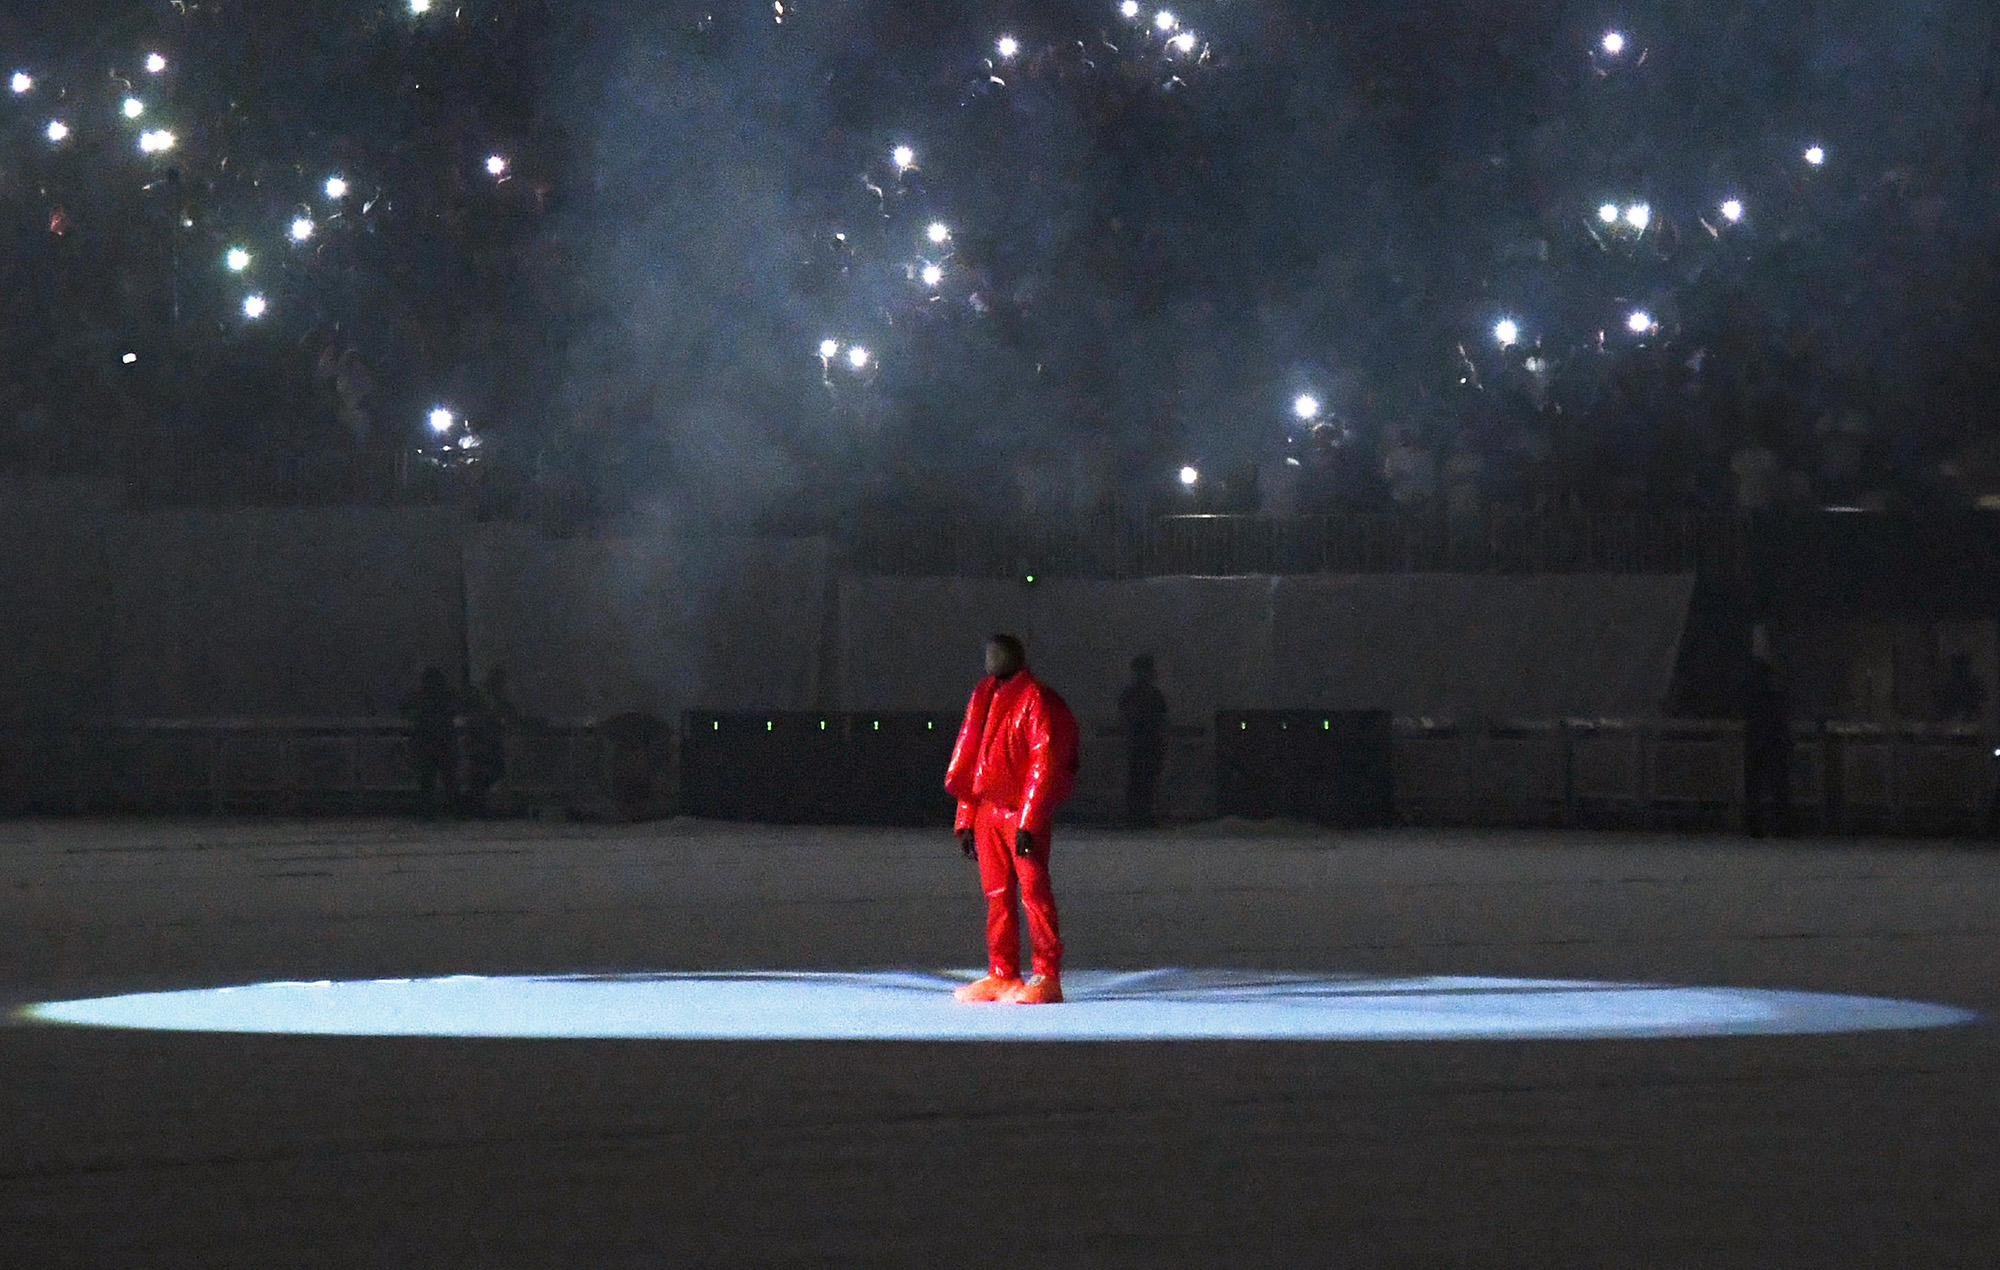 Kanye West's Chicago 'DONDA' listening event will be live-streamed on Apple Music